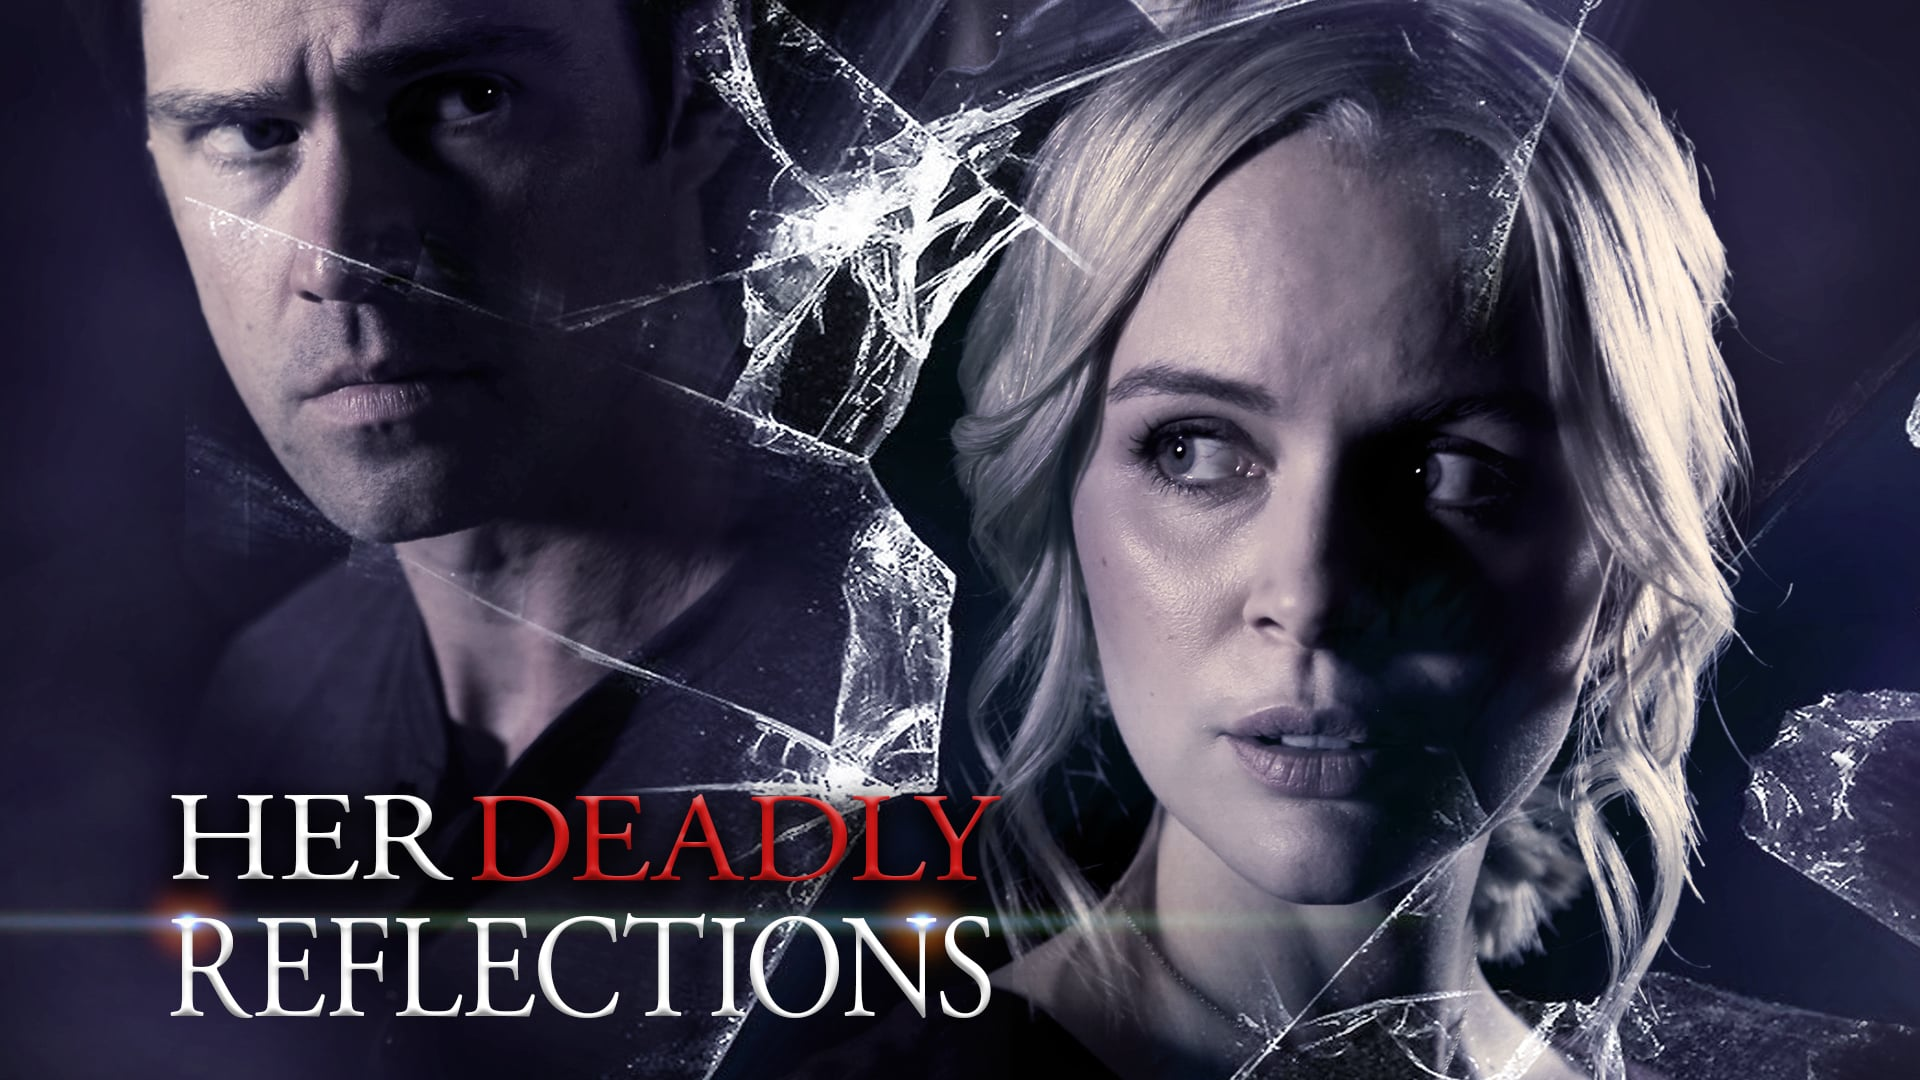 Her Deadly Reflections